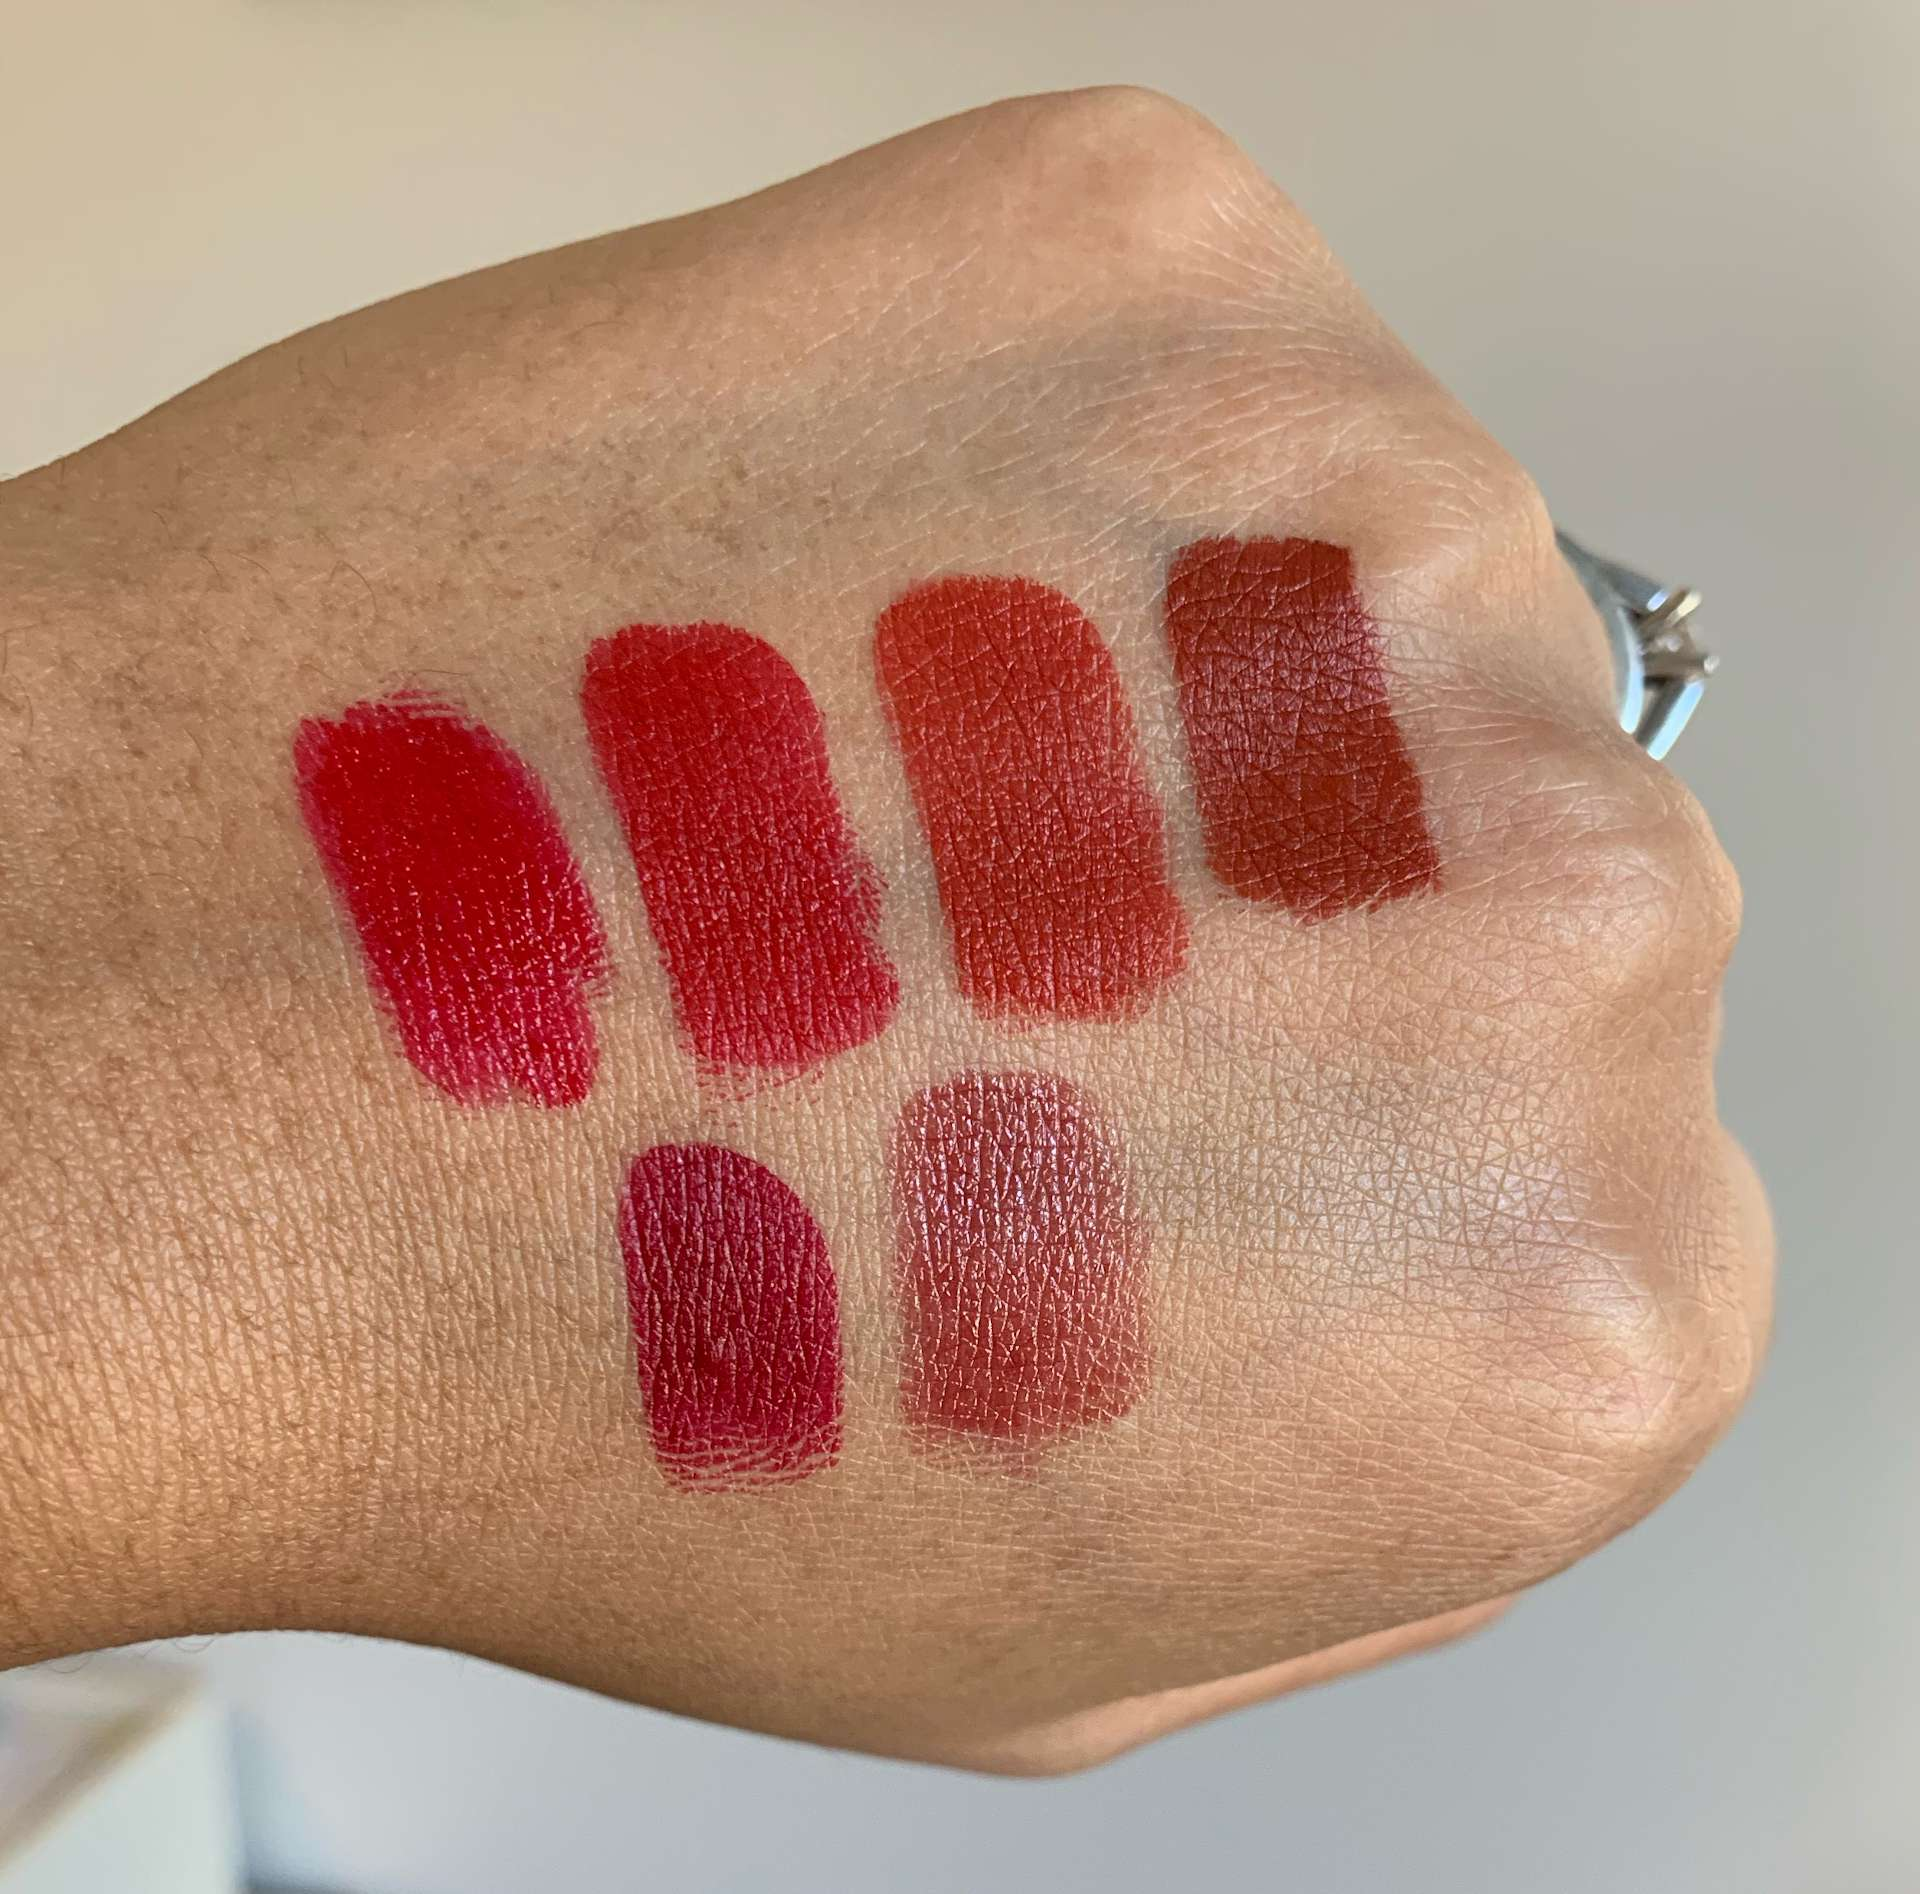 MAC Cosmetics Lipstick Swatches (mac red, russian red, chili, marrakesh, d for danger, spice it up)